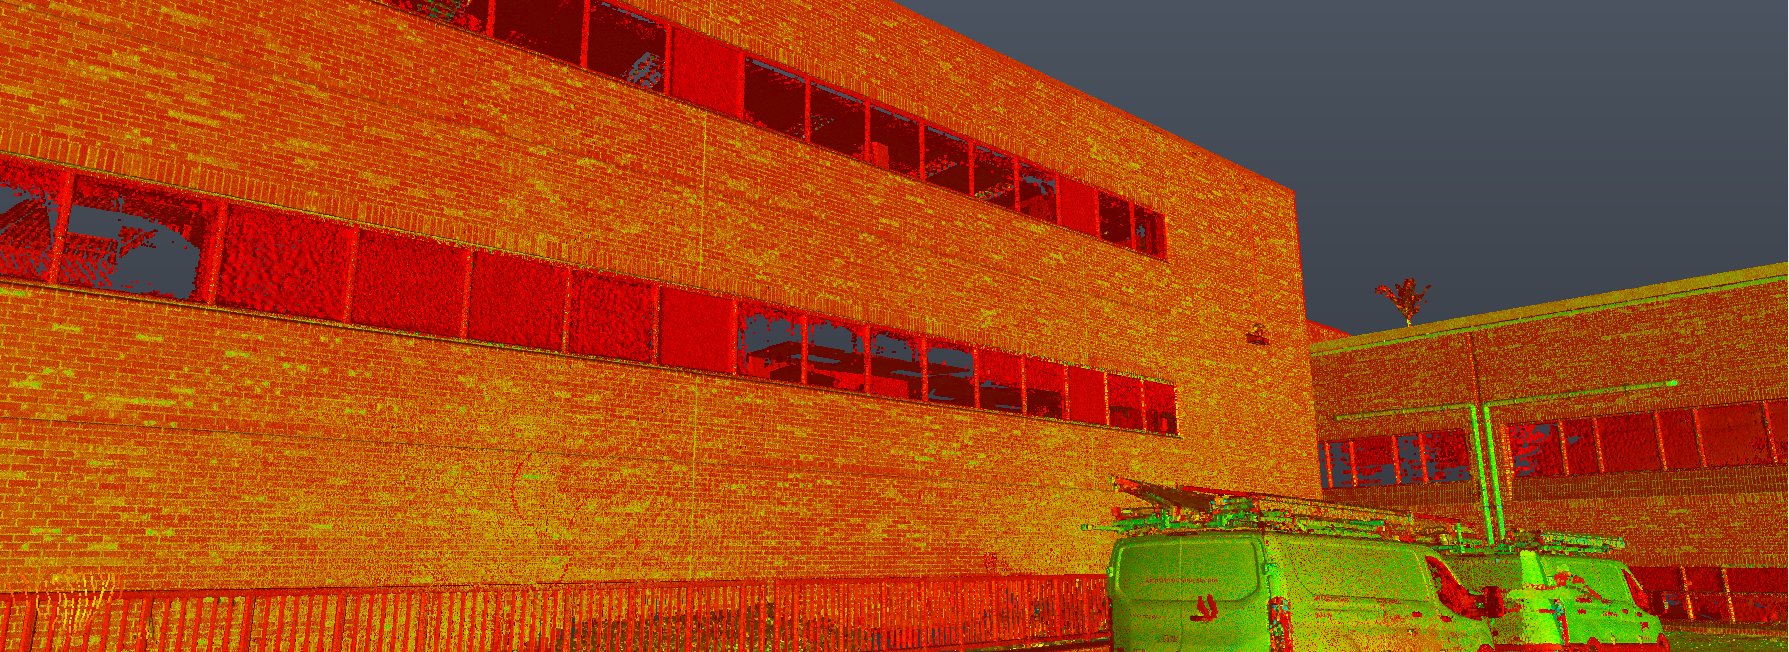 Best 3D Scanning for Architecture & Construction | Rogue